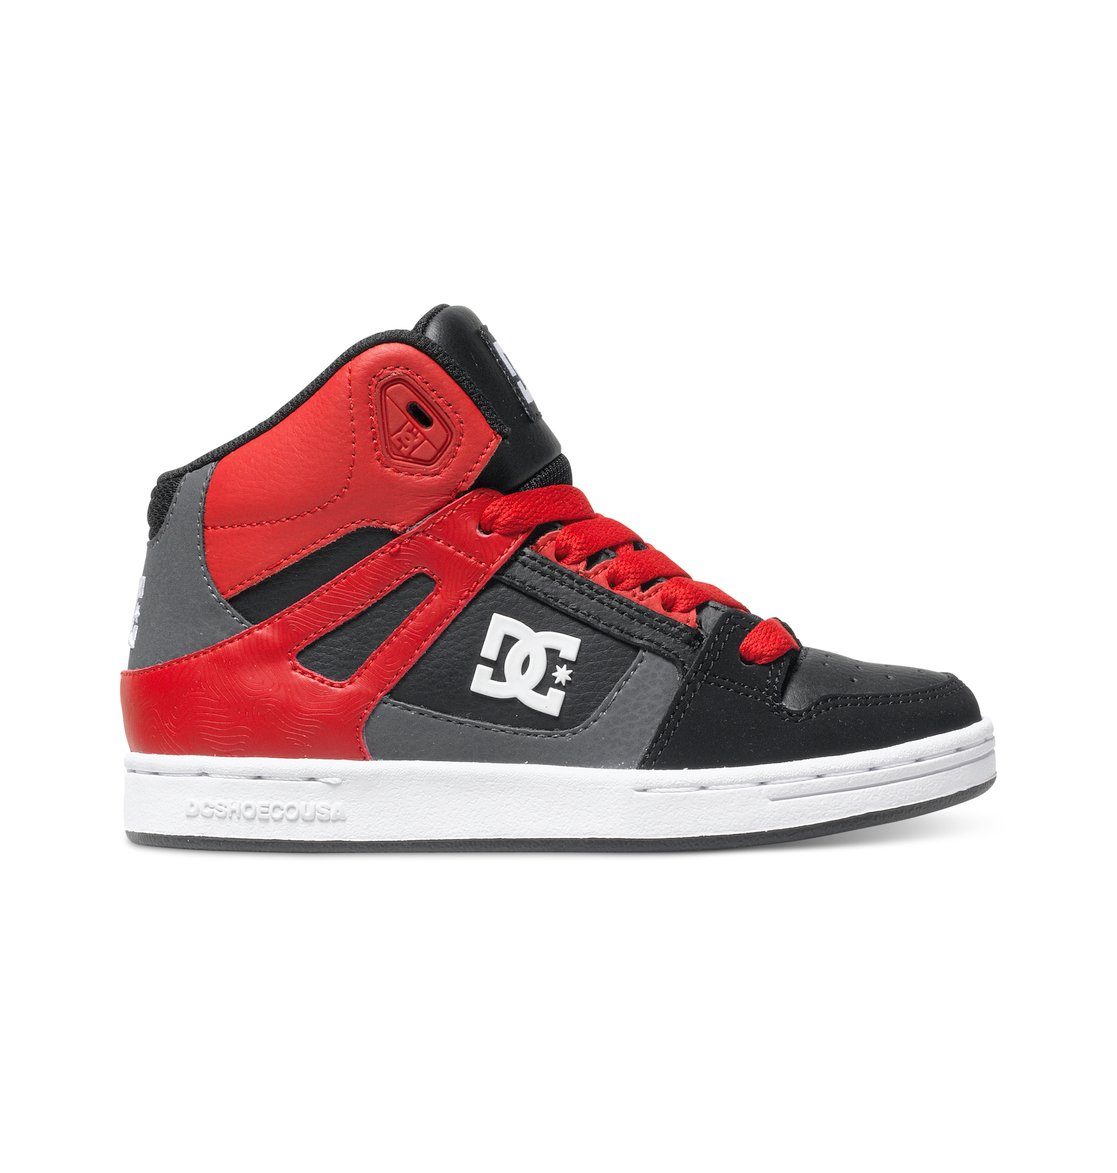 Rebound - Dcshoes������� ���� Rebound ��� ��������� �� DC Shoes. <br>��������������: ������� ��� � �������������� ���������, ������� ���� � ������� � ������ ������������, ���� � ��������� �����������, ��������� ��� �������� � ���������� �� �����������, ������������� ���������� �������, ��������� ������� ���������� ������� DC Pill Pattern. <br>������: ����: ���� / ���������: �������� / �������: ������.<br>